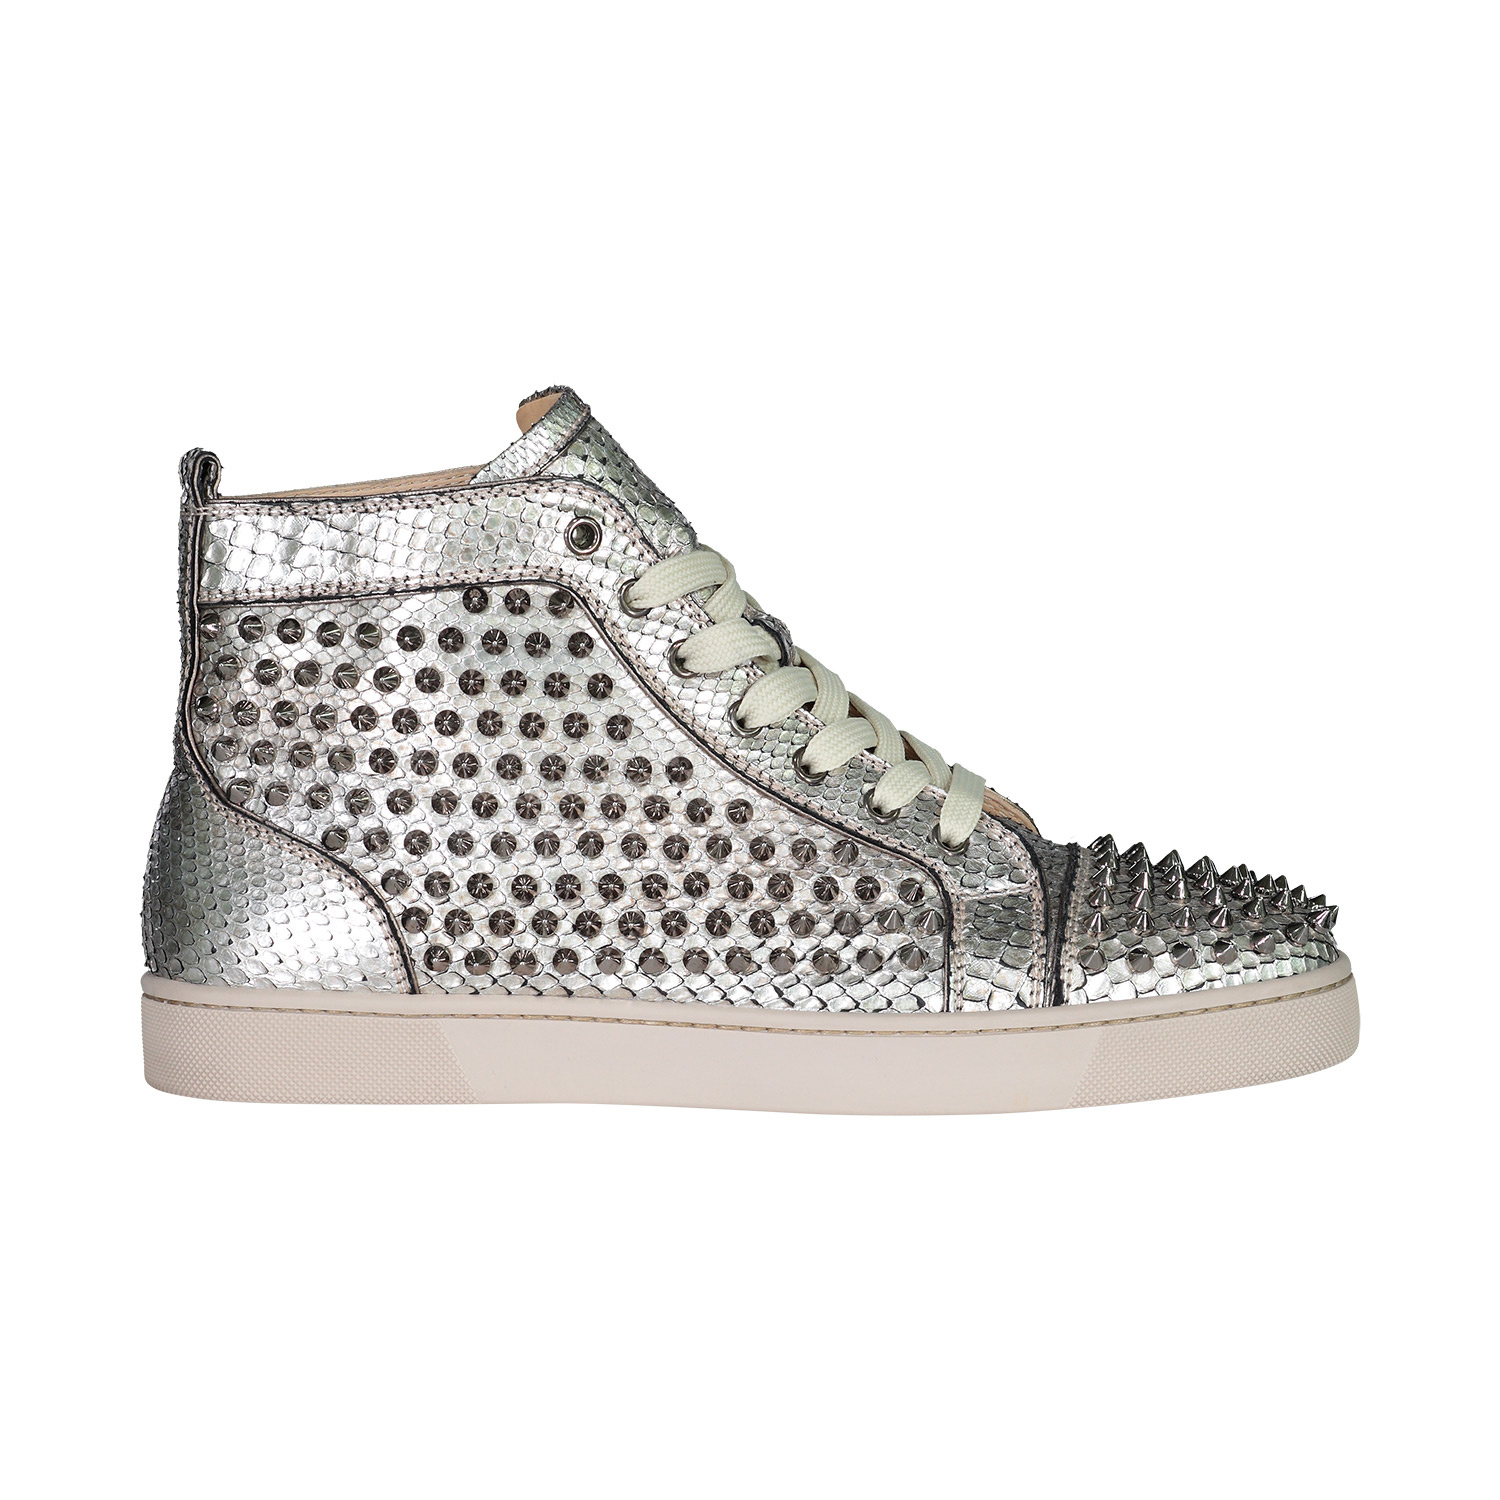 sports shoes a6353 e27f0 Christian Louboutin Christian Louboutin Silver Spike Python Louis Orlato  Sneakers